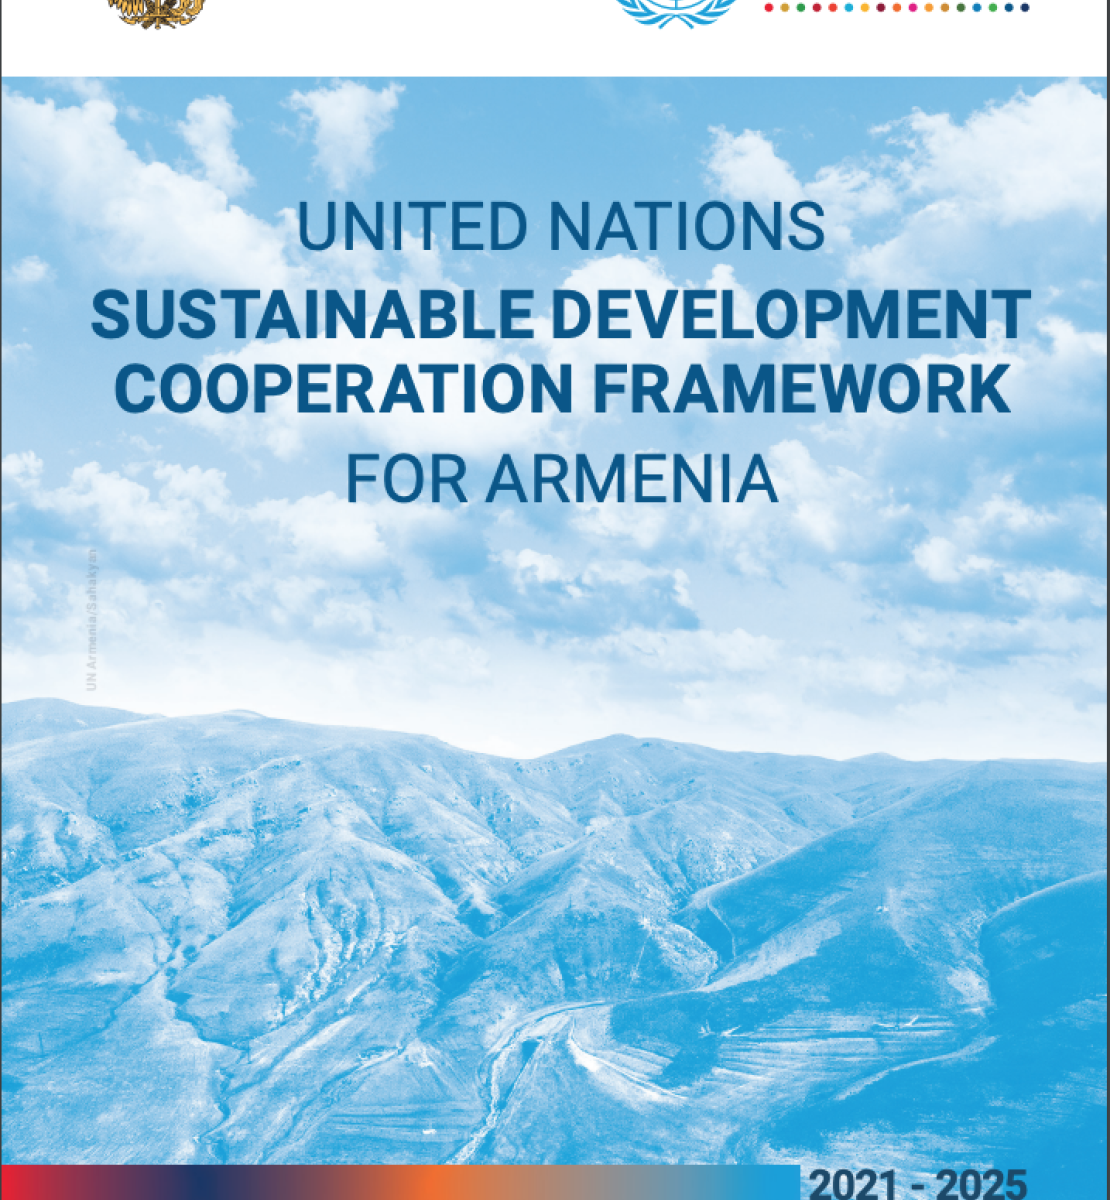 Cover of the document shows an aerial shot of mountains with the title of the document over the image with the government and UNCT logos above the title.